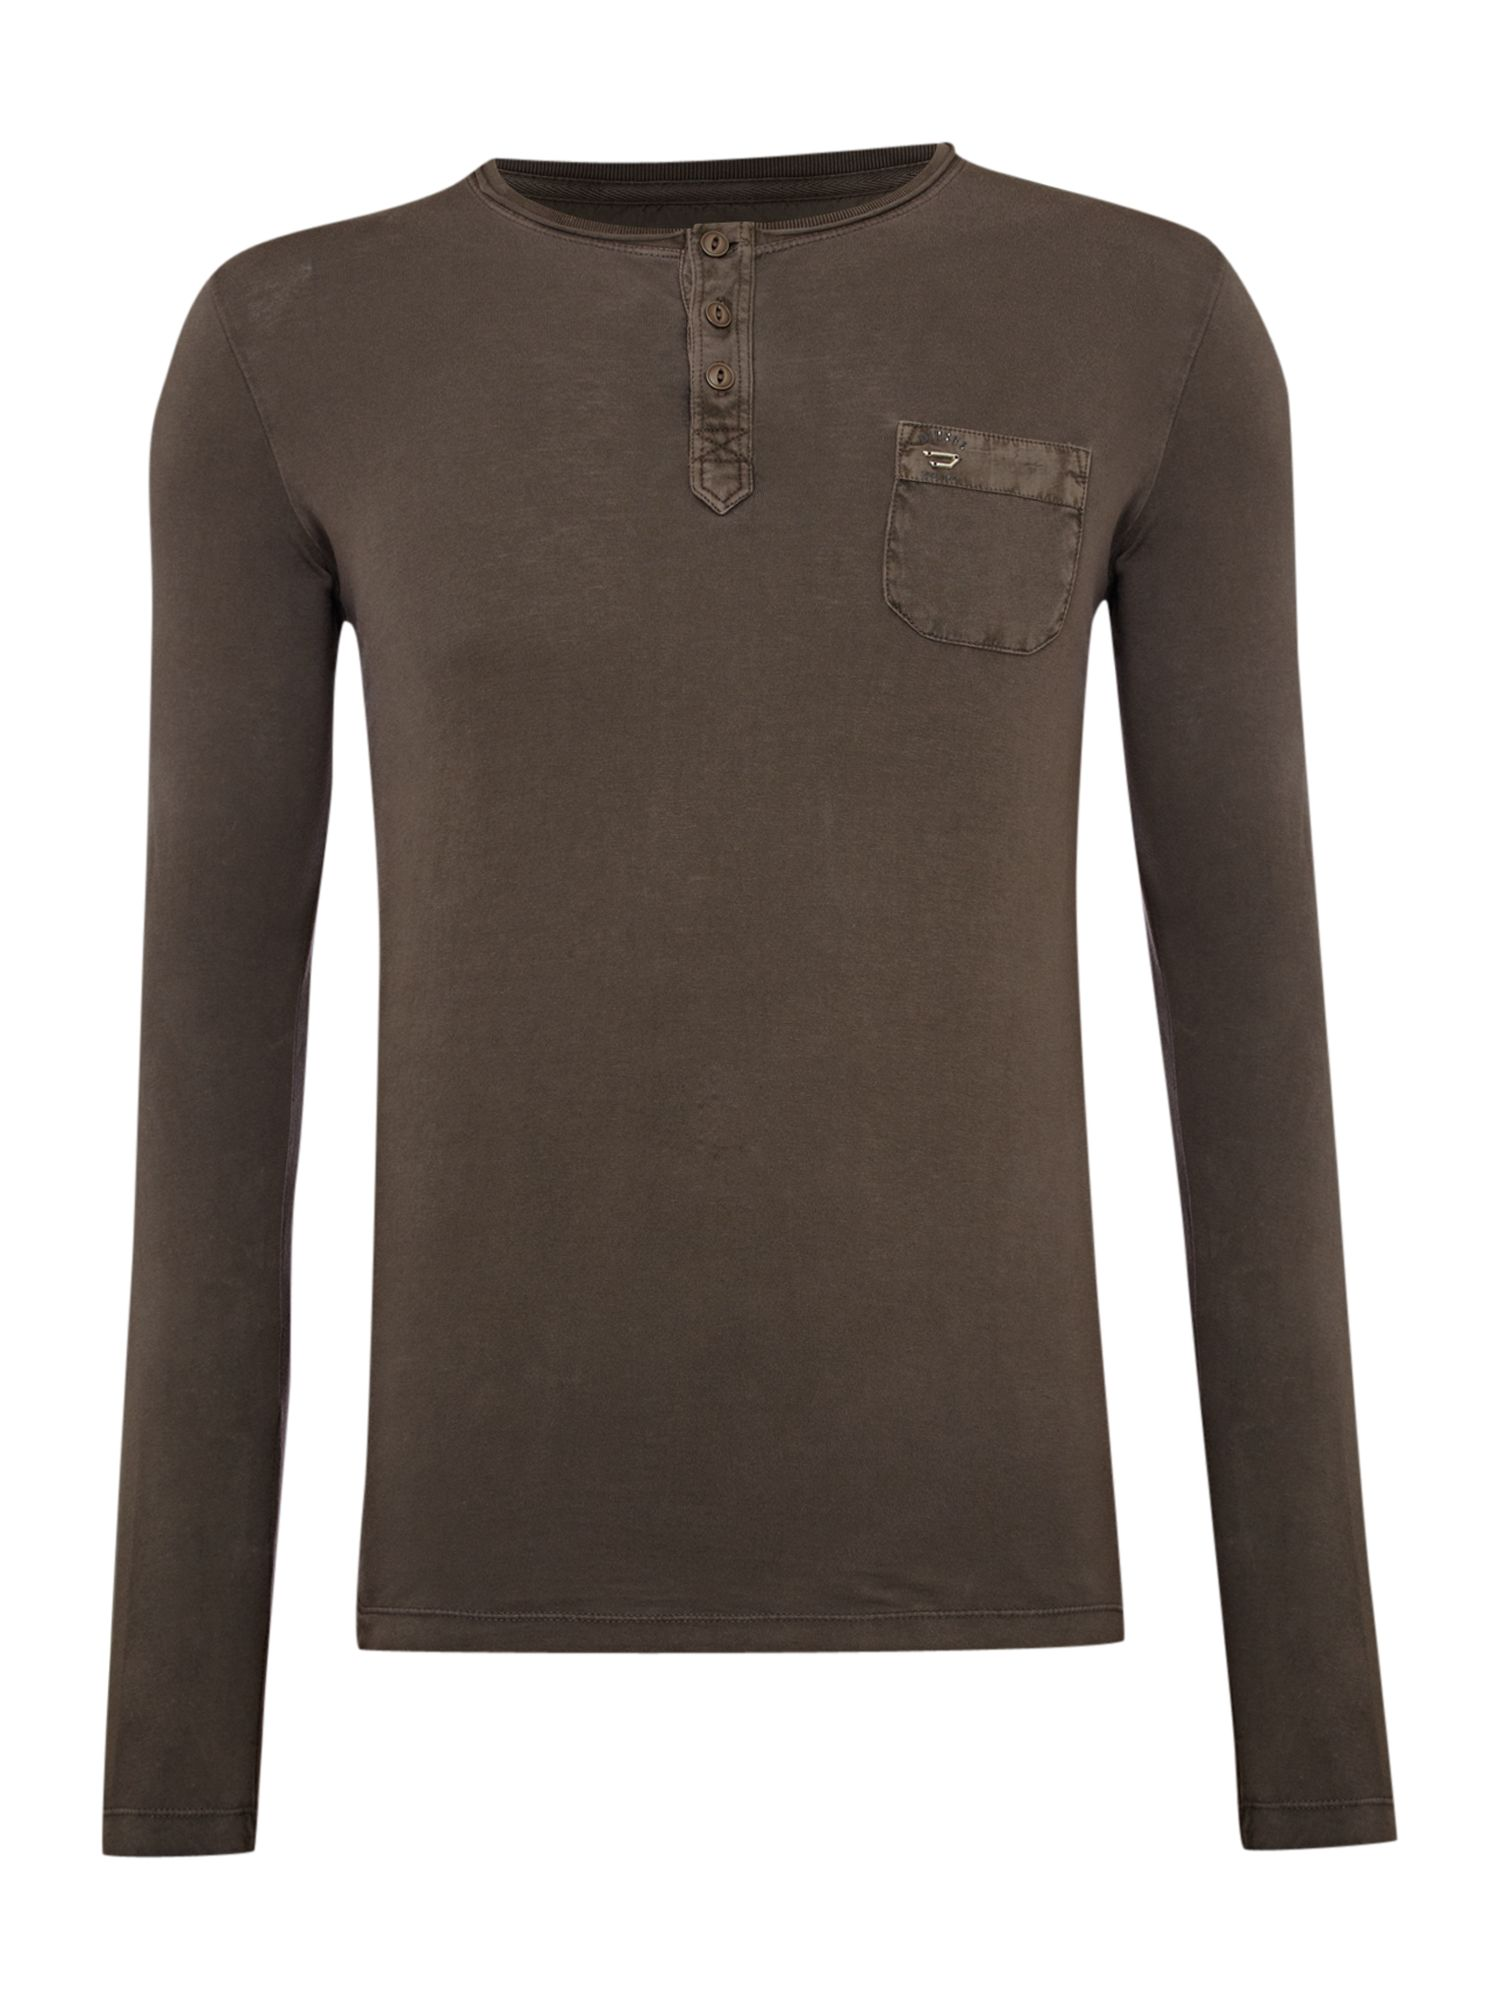 Diesel Mens Diesel Long-sleeve henley T-shirt, product image